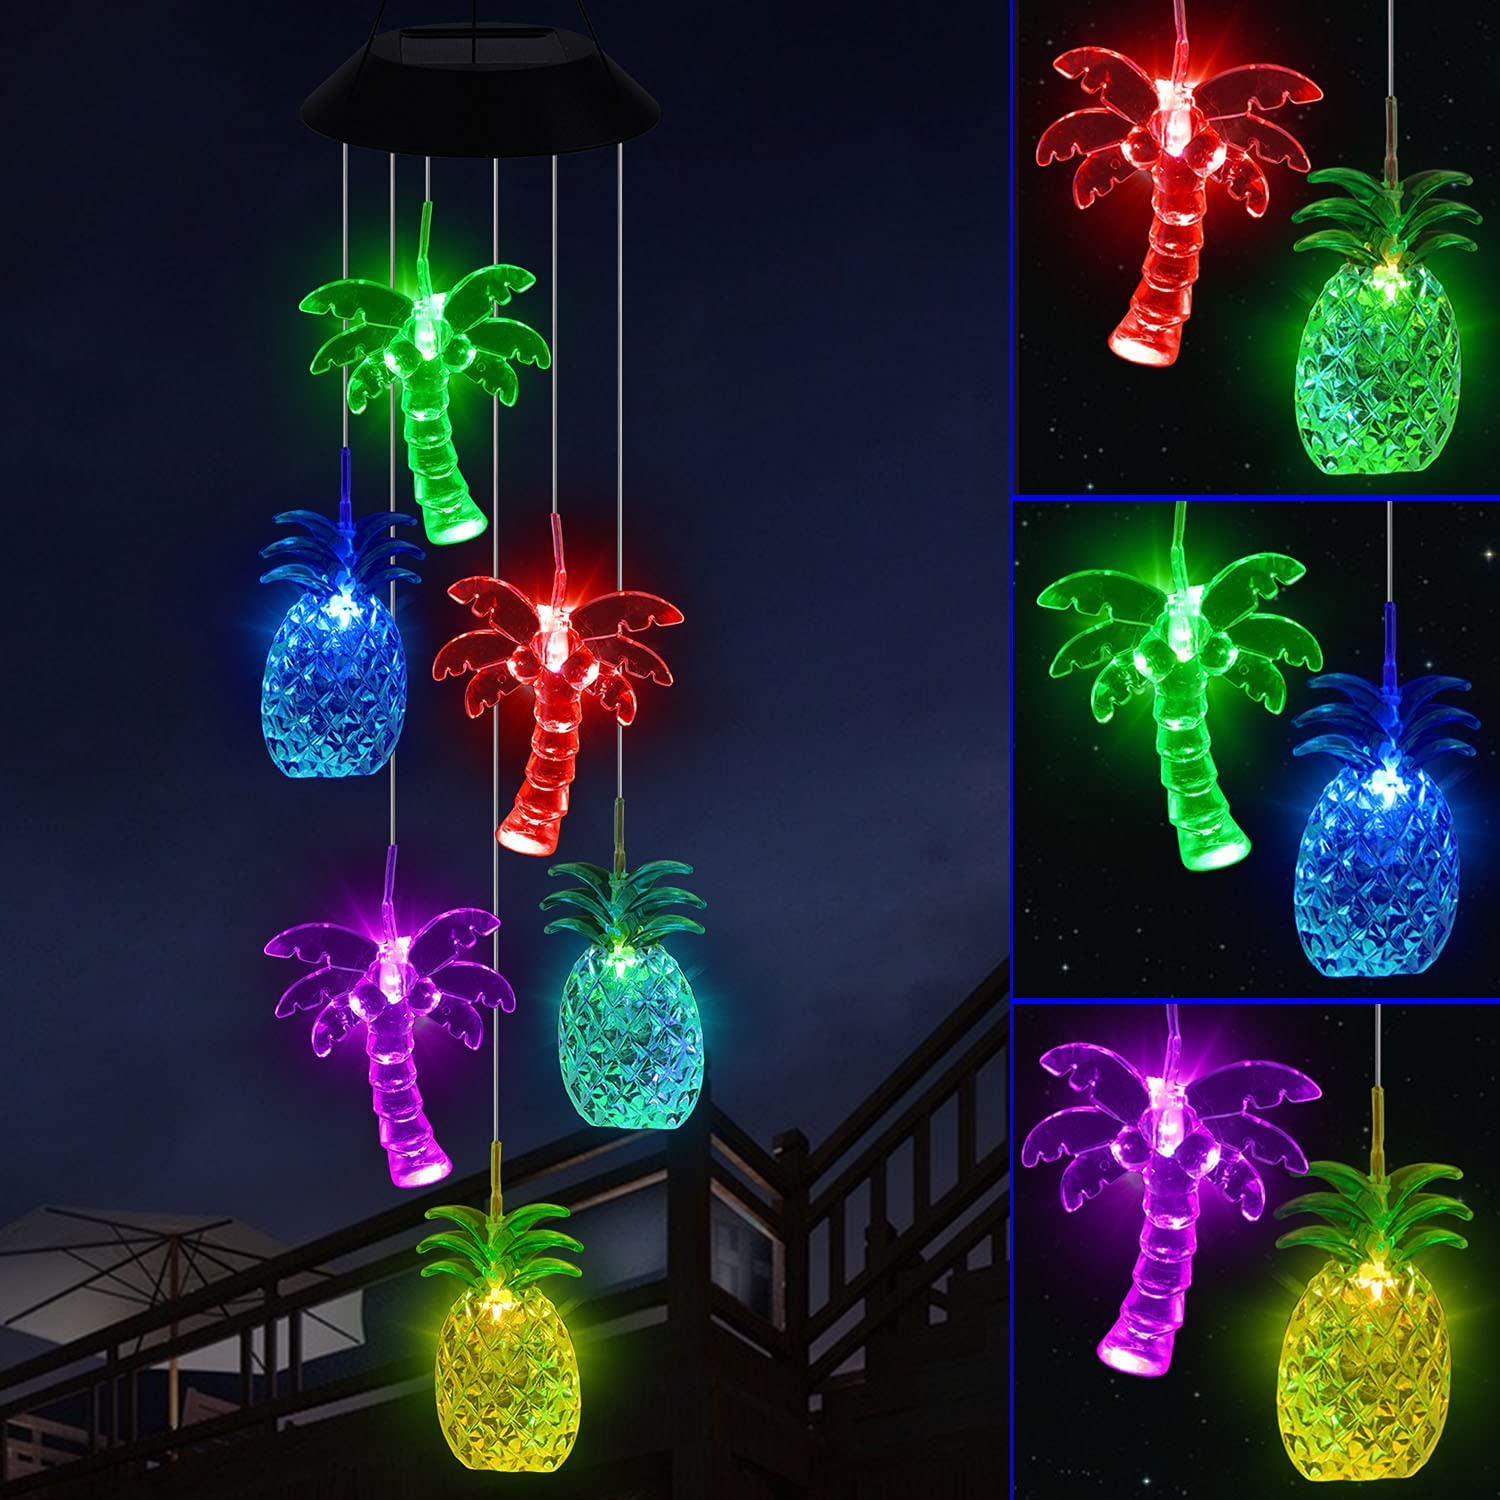 YMXBL Palm Tree Pineapple Wind Chime Solar Color Changing Palm Trees Wind Chimes Outdoor Decor Waterproof Solar Powered Pineapple Light Romantic Wind Chime Gifts for Women Home Patio Garden Decorative